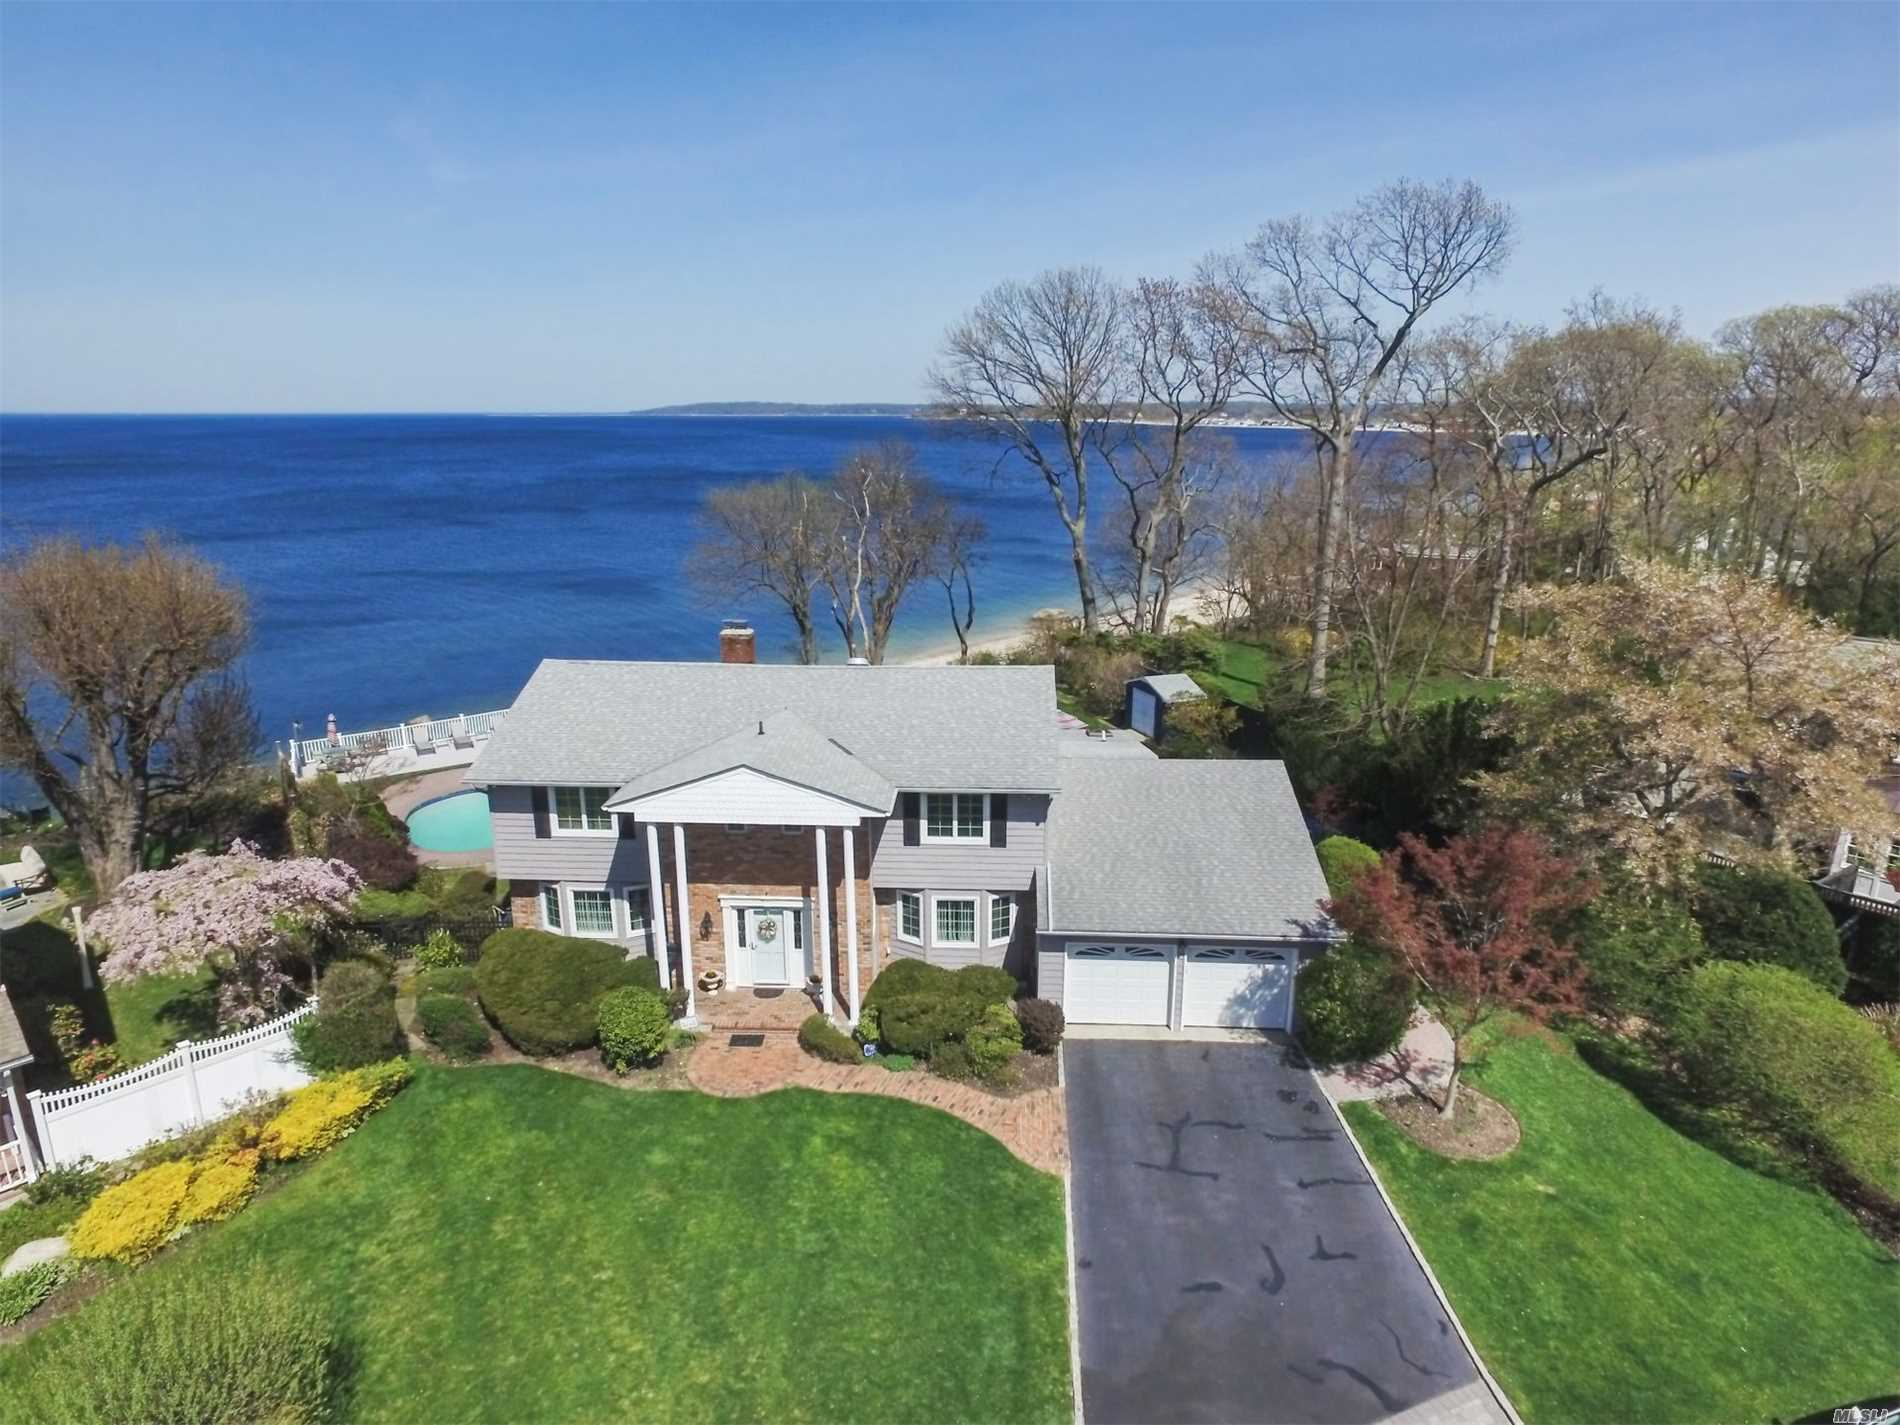 Picturesque Waterfront Colonial Nestled On A High Bluff With Breathtaking Views Of The Long Island Sound. This Home Boasts 5 Bedrooms, Large Expanded Kitchen With Window-Lined Views Of The Sound, Heated Gunite Pool, Large Maintenance Free Deck With Private Steps Leading Down To The Beach And Much More. Wake Up To Glistening Water Views While Watching Gorgeous Sunsets In The Evening. Fantastic Opportunity To Live On One Of The Few, Truly Waterfront Homes Remaining!